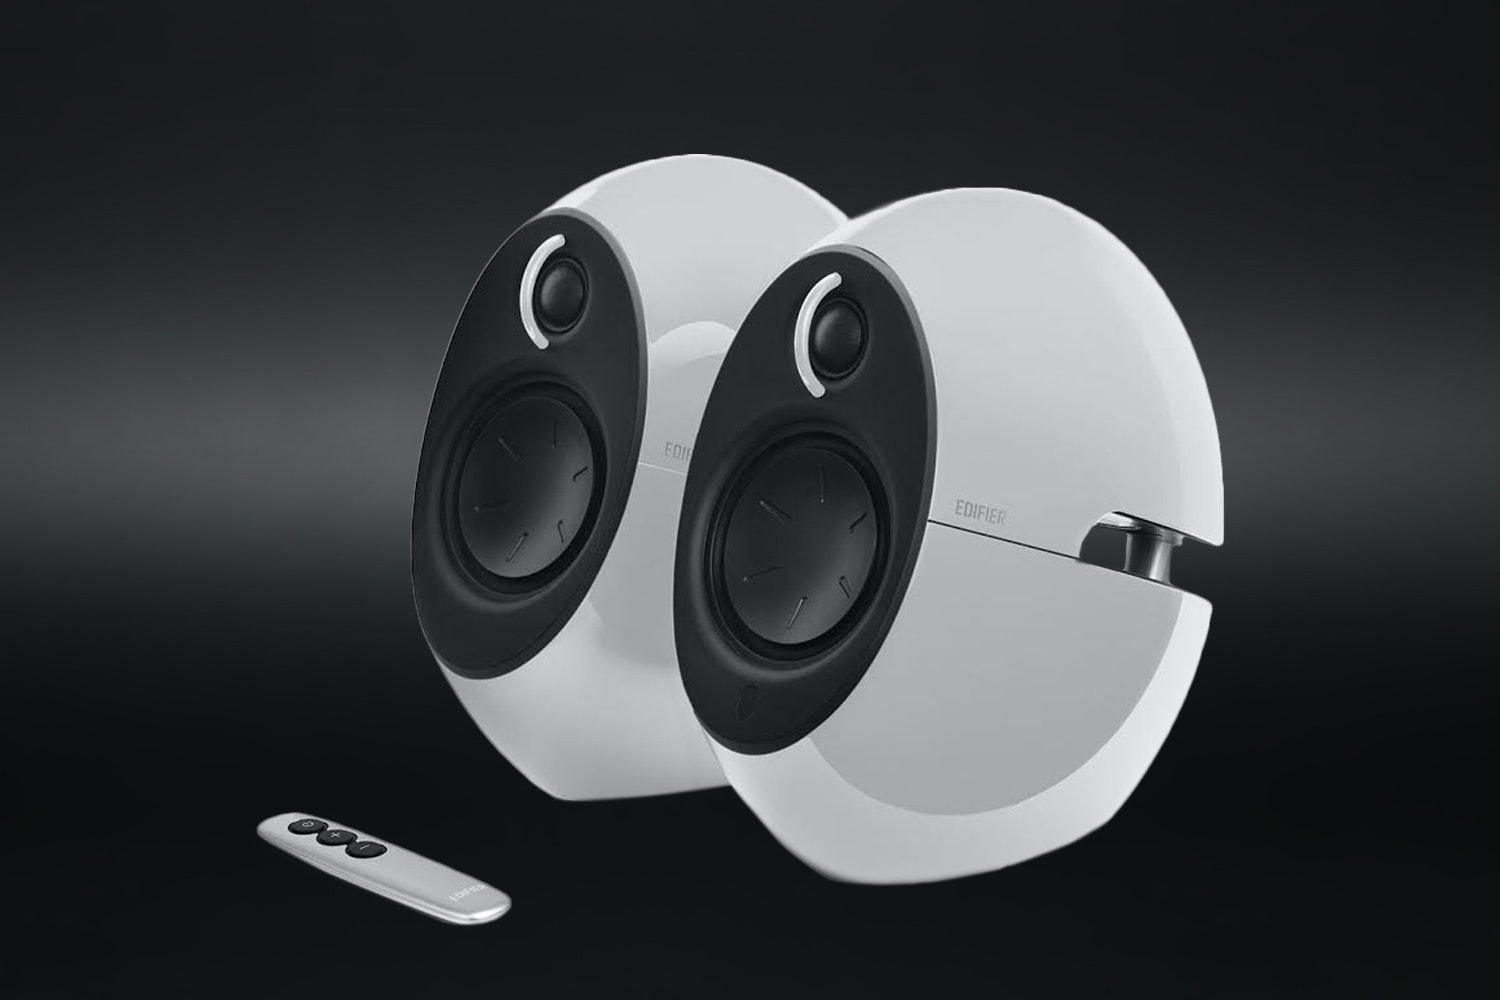 E25 HD Luna Eclipse – White (+ $30)